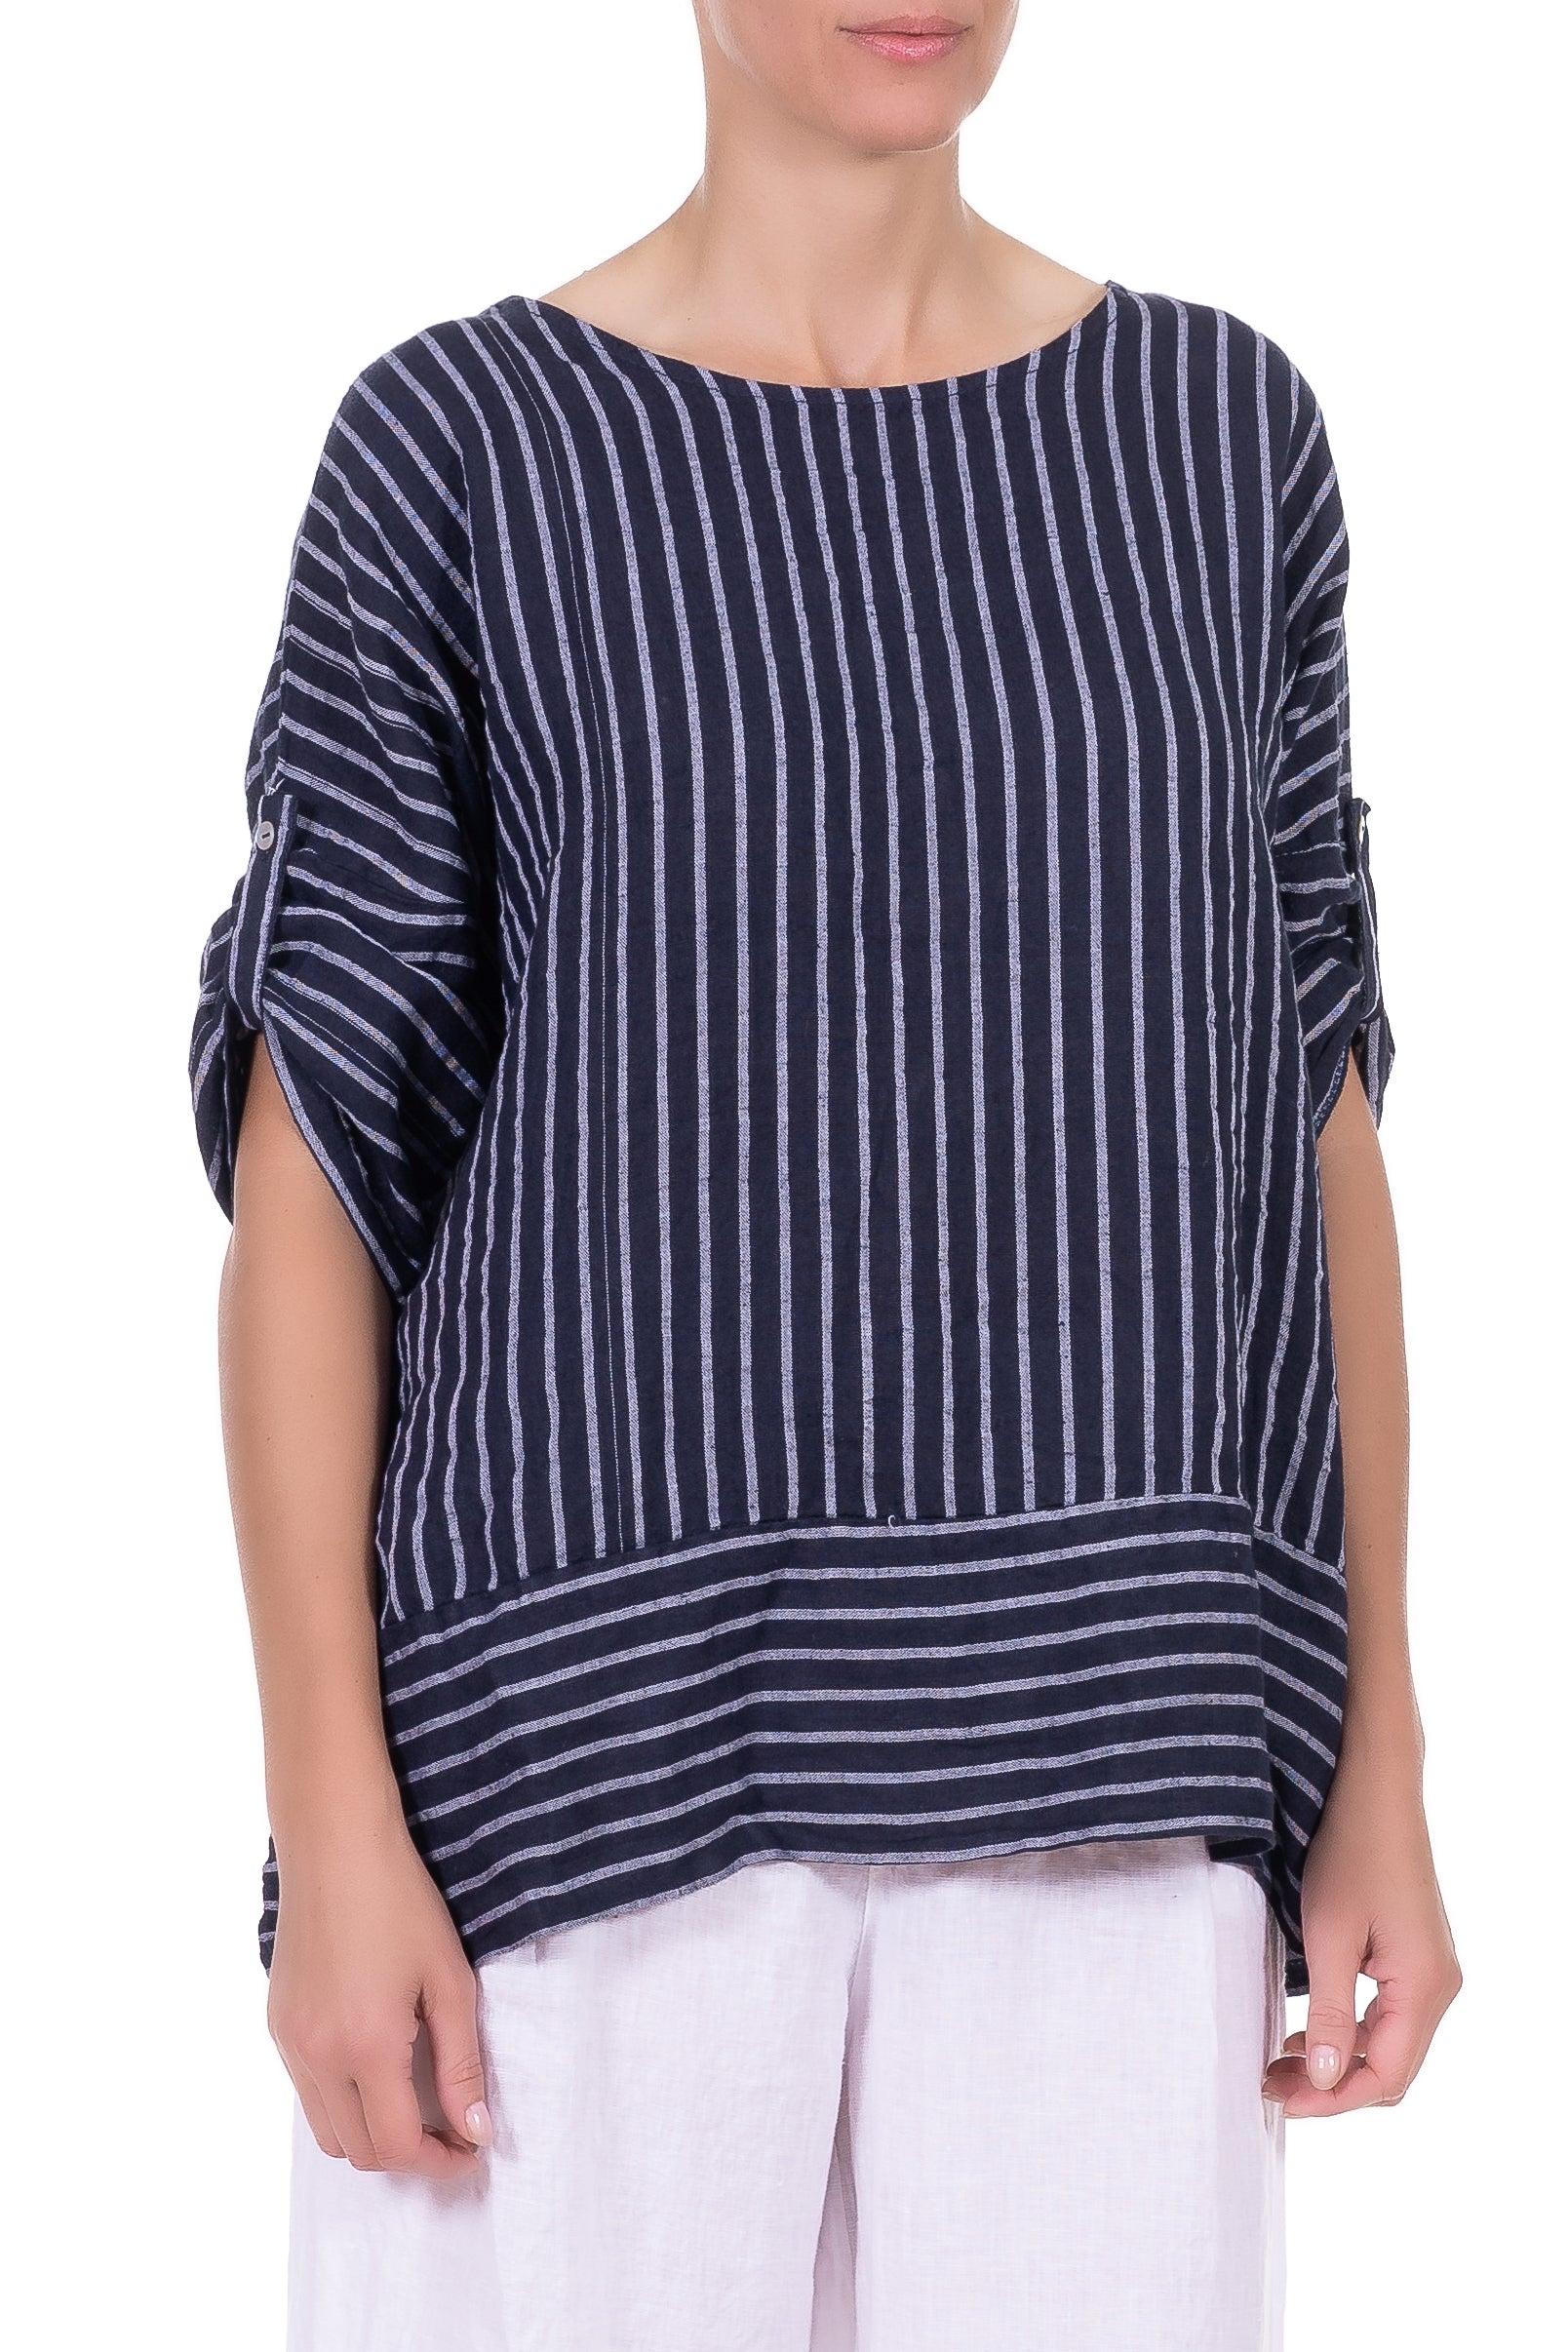 Stripe Tunic, 2 colours